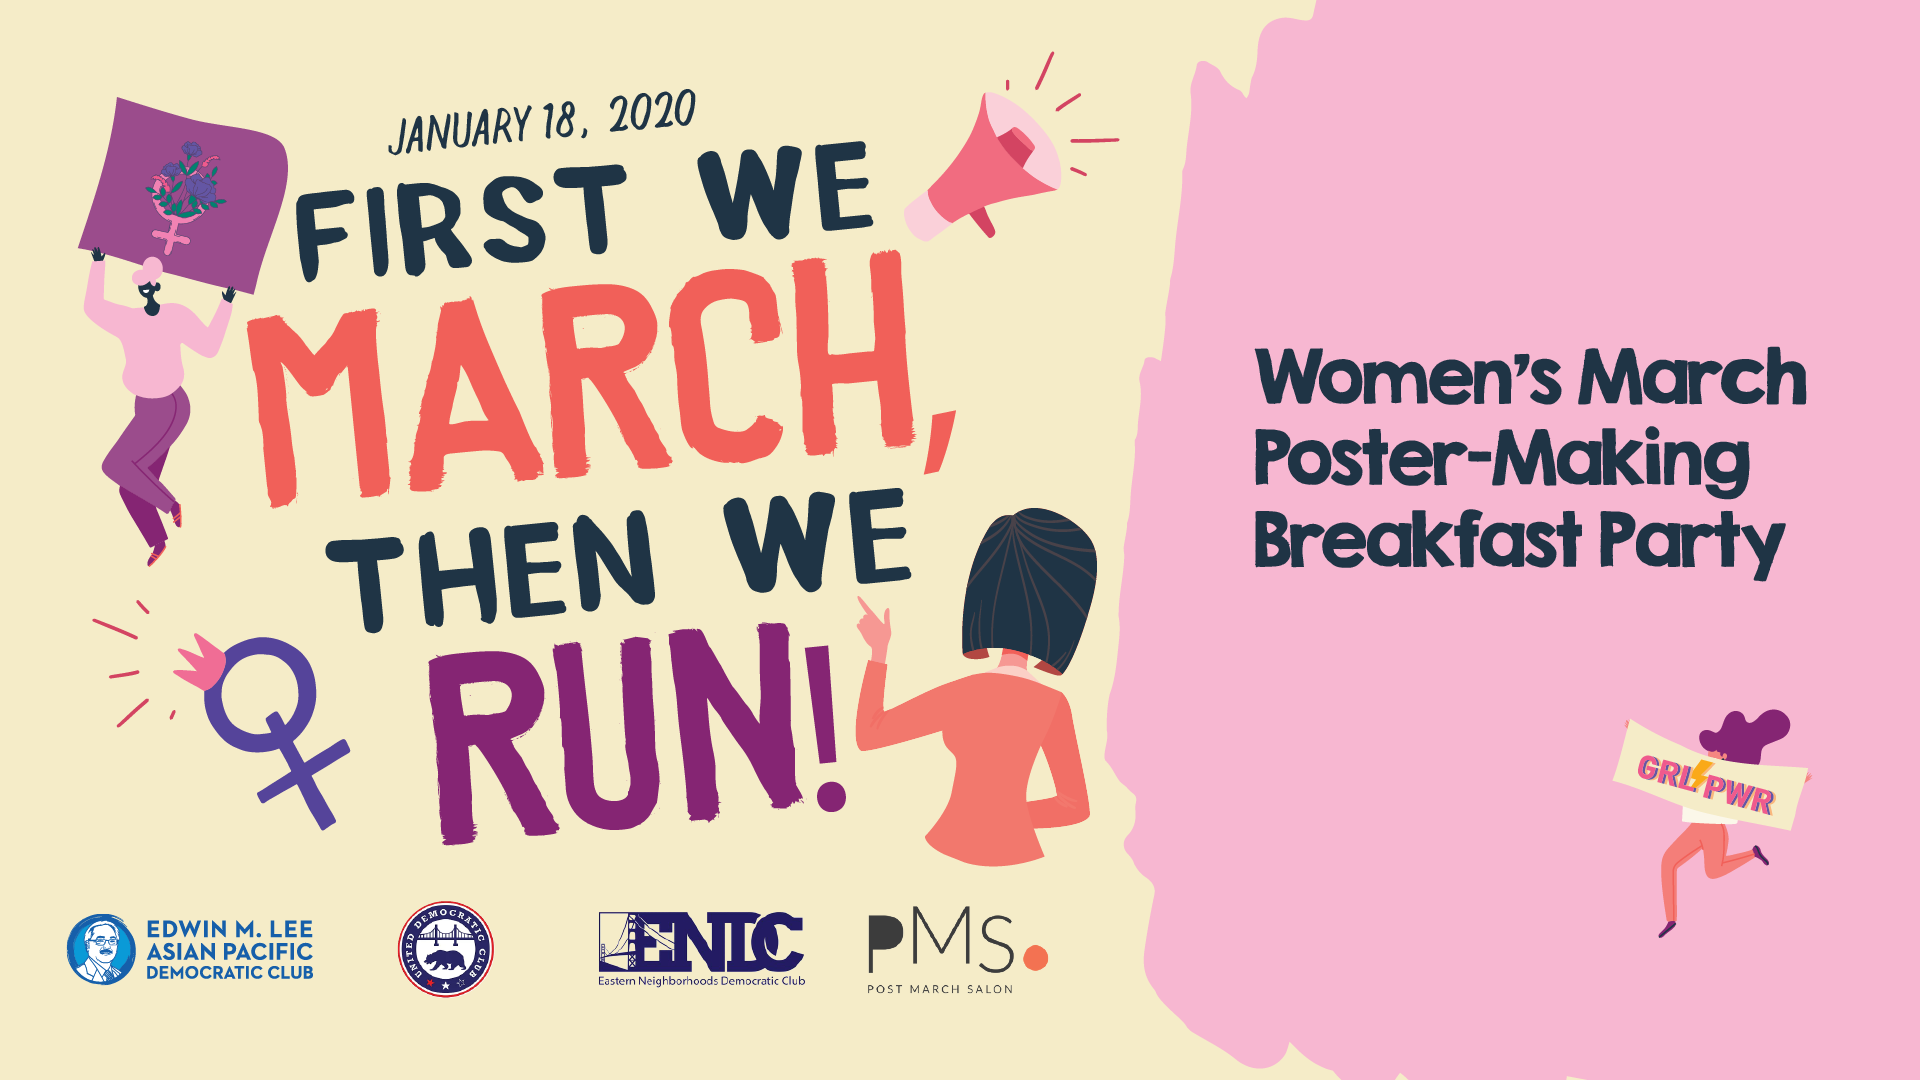 1/18 – Women's March Poster-Making Breakfast Party